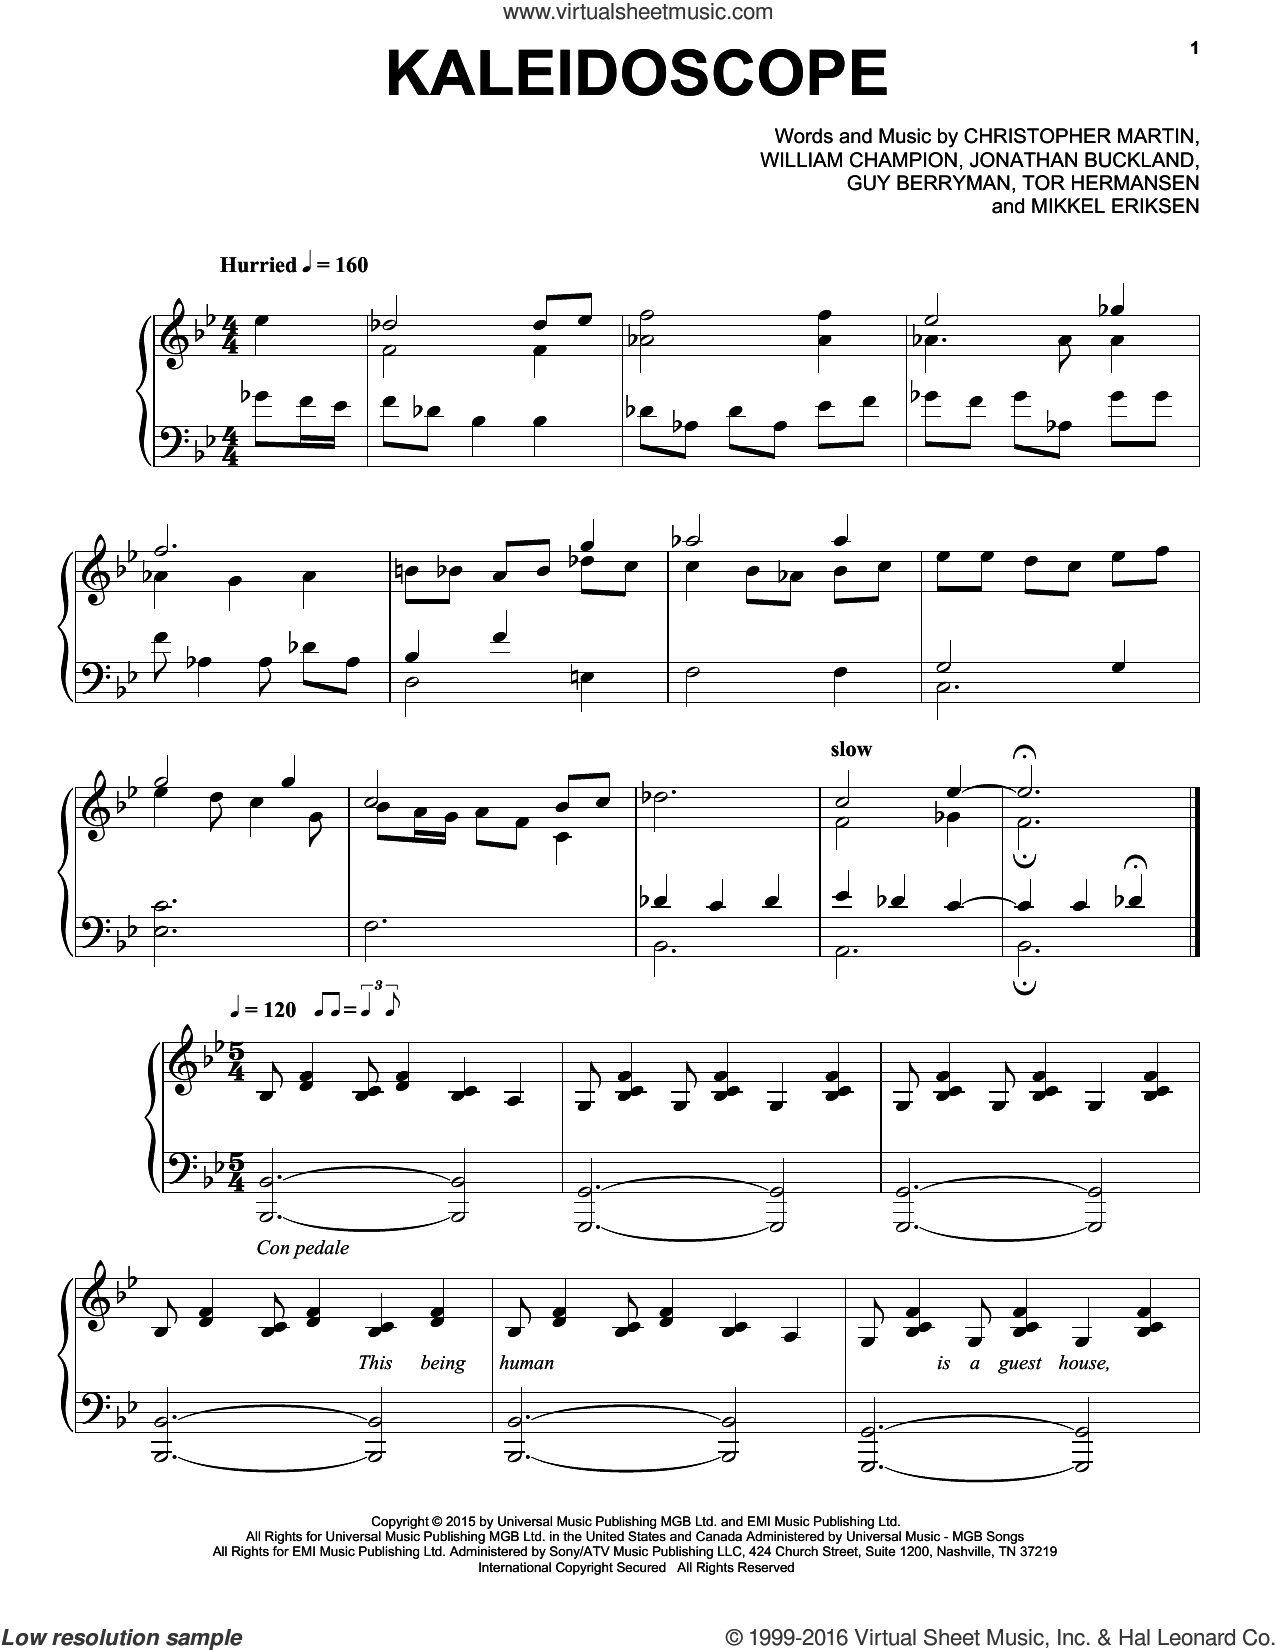 Kaleidoscope sheet music for piano solo by Coldplay, Christopher Martin, Guy Berryman, Jonathan Buckland, Mikkel Eriksen, Tor Erik Hermansen and William Champion, intermediate skill level